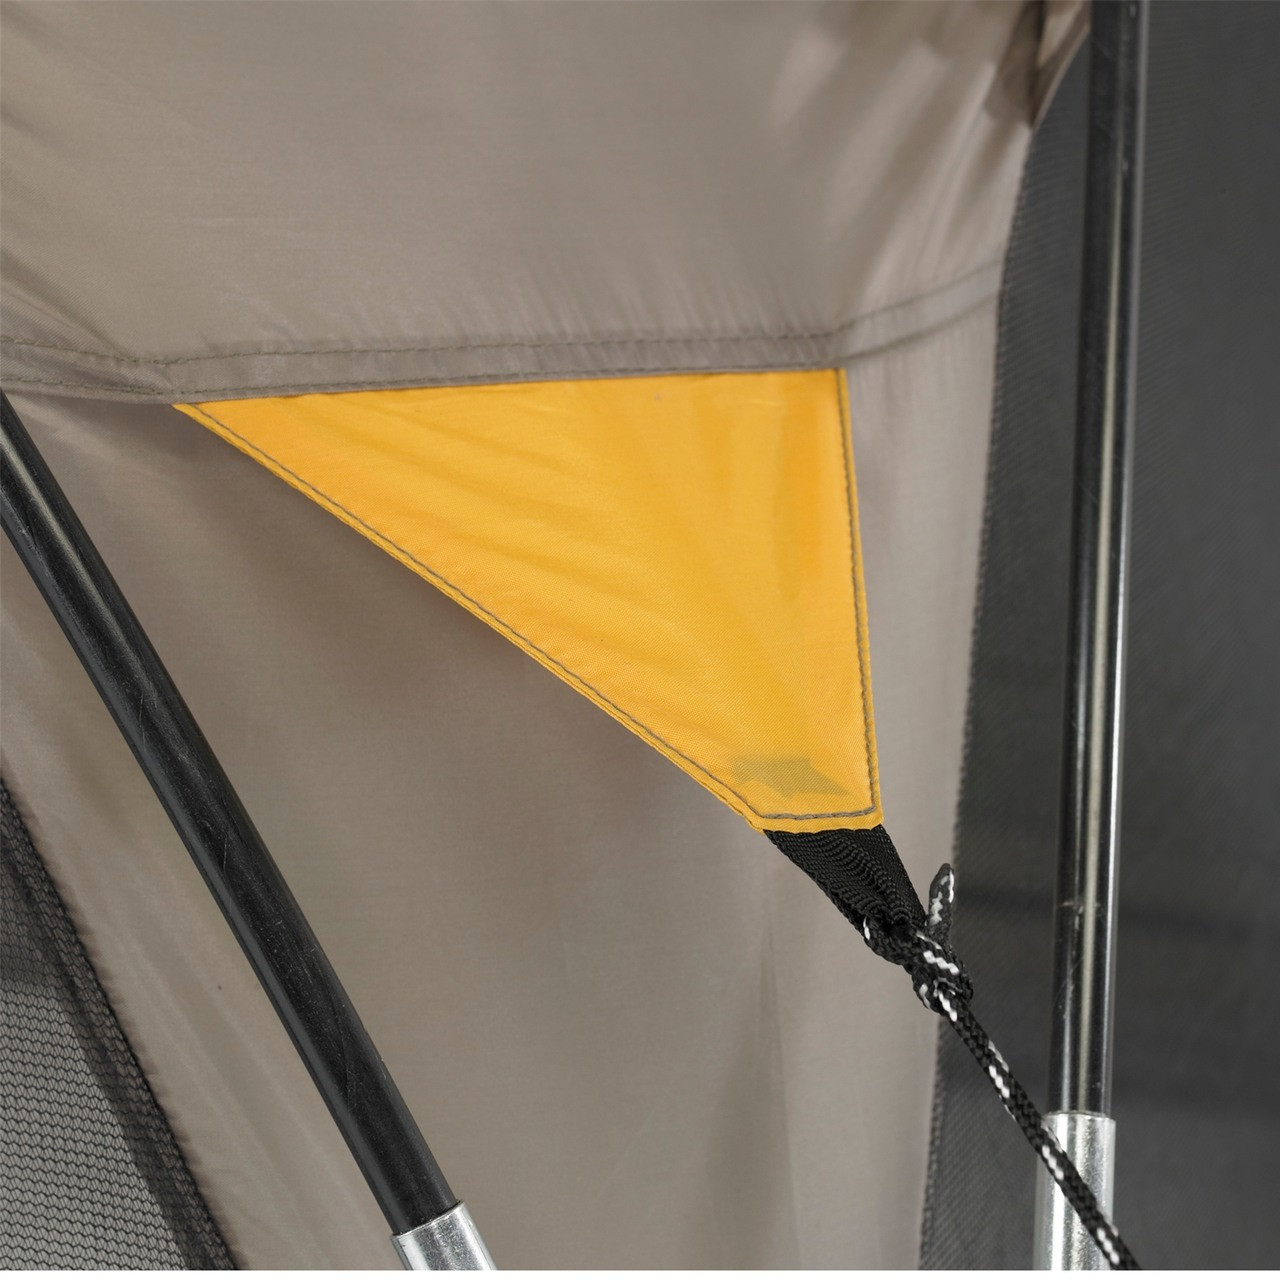 Close up view of a guy line connection to the tent on the Wenzel Sun Valley shelter